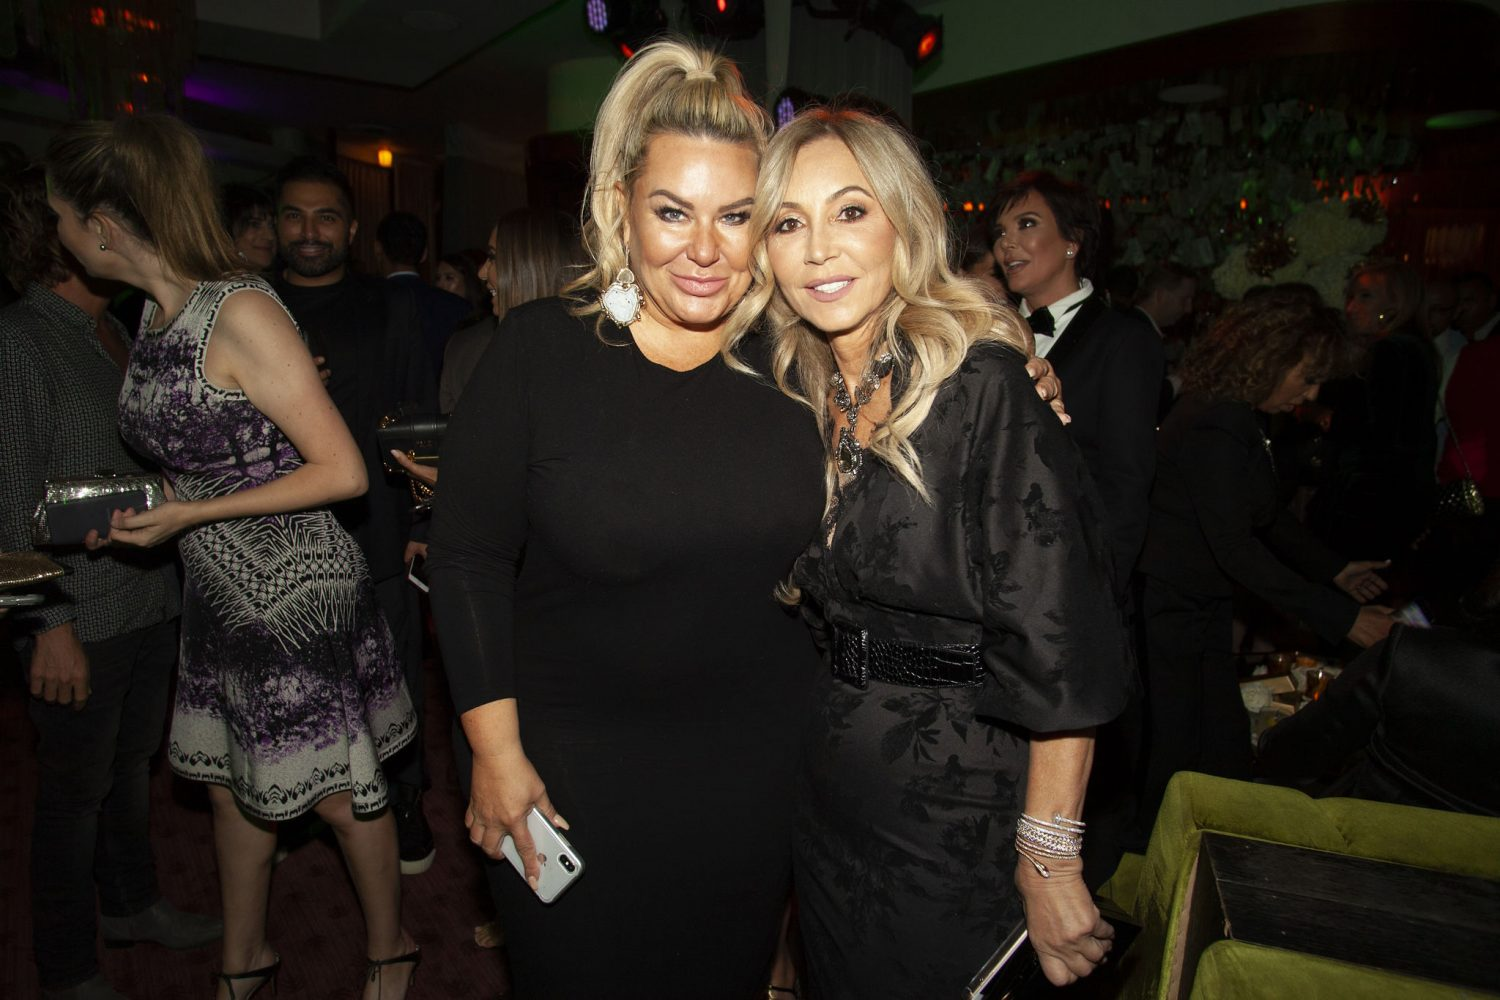 Kimberly McDonald and Anastasia Soare